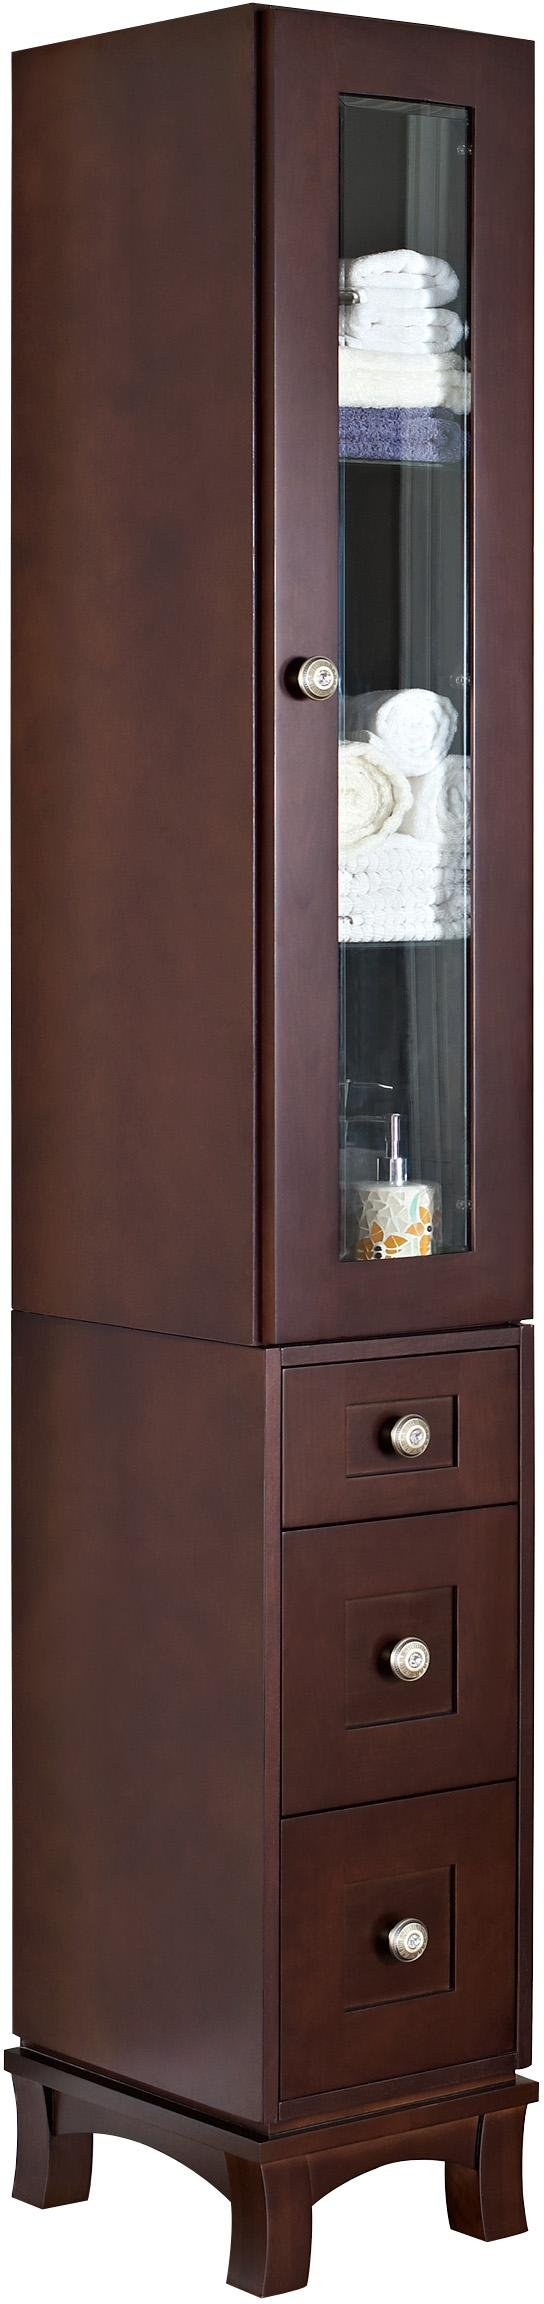 American Imaginations Rectangle Shape Transitional Linen Tower, Comes with a Lacquer-Stain Finish in Coffee Color